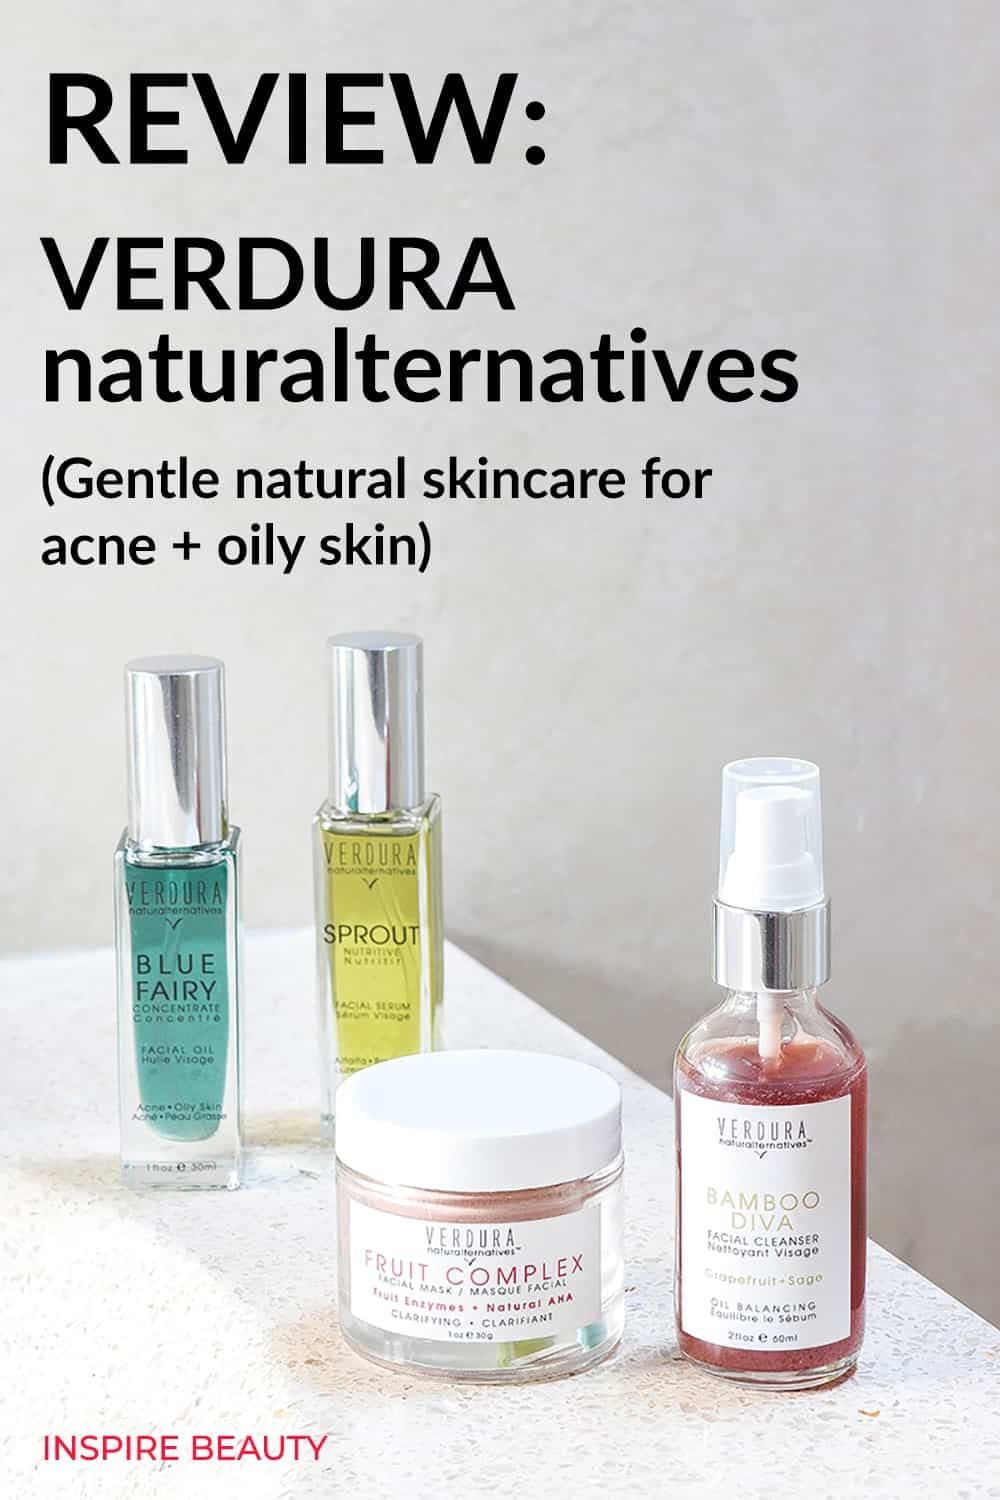 VERDURA naturalternatives review of Blue Fairy Concentrate, Fruit Complex Facial Mask, Bamboo Diva Cleanser, Sprout Facial Oil